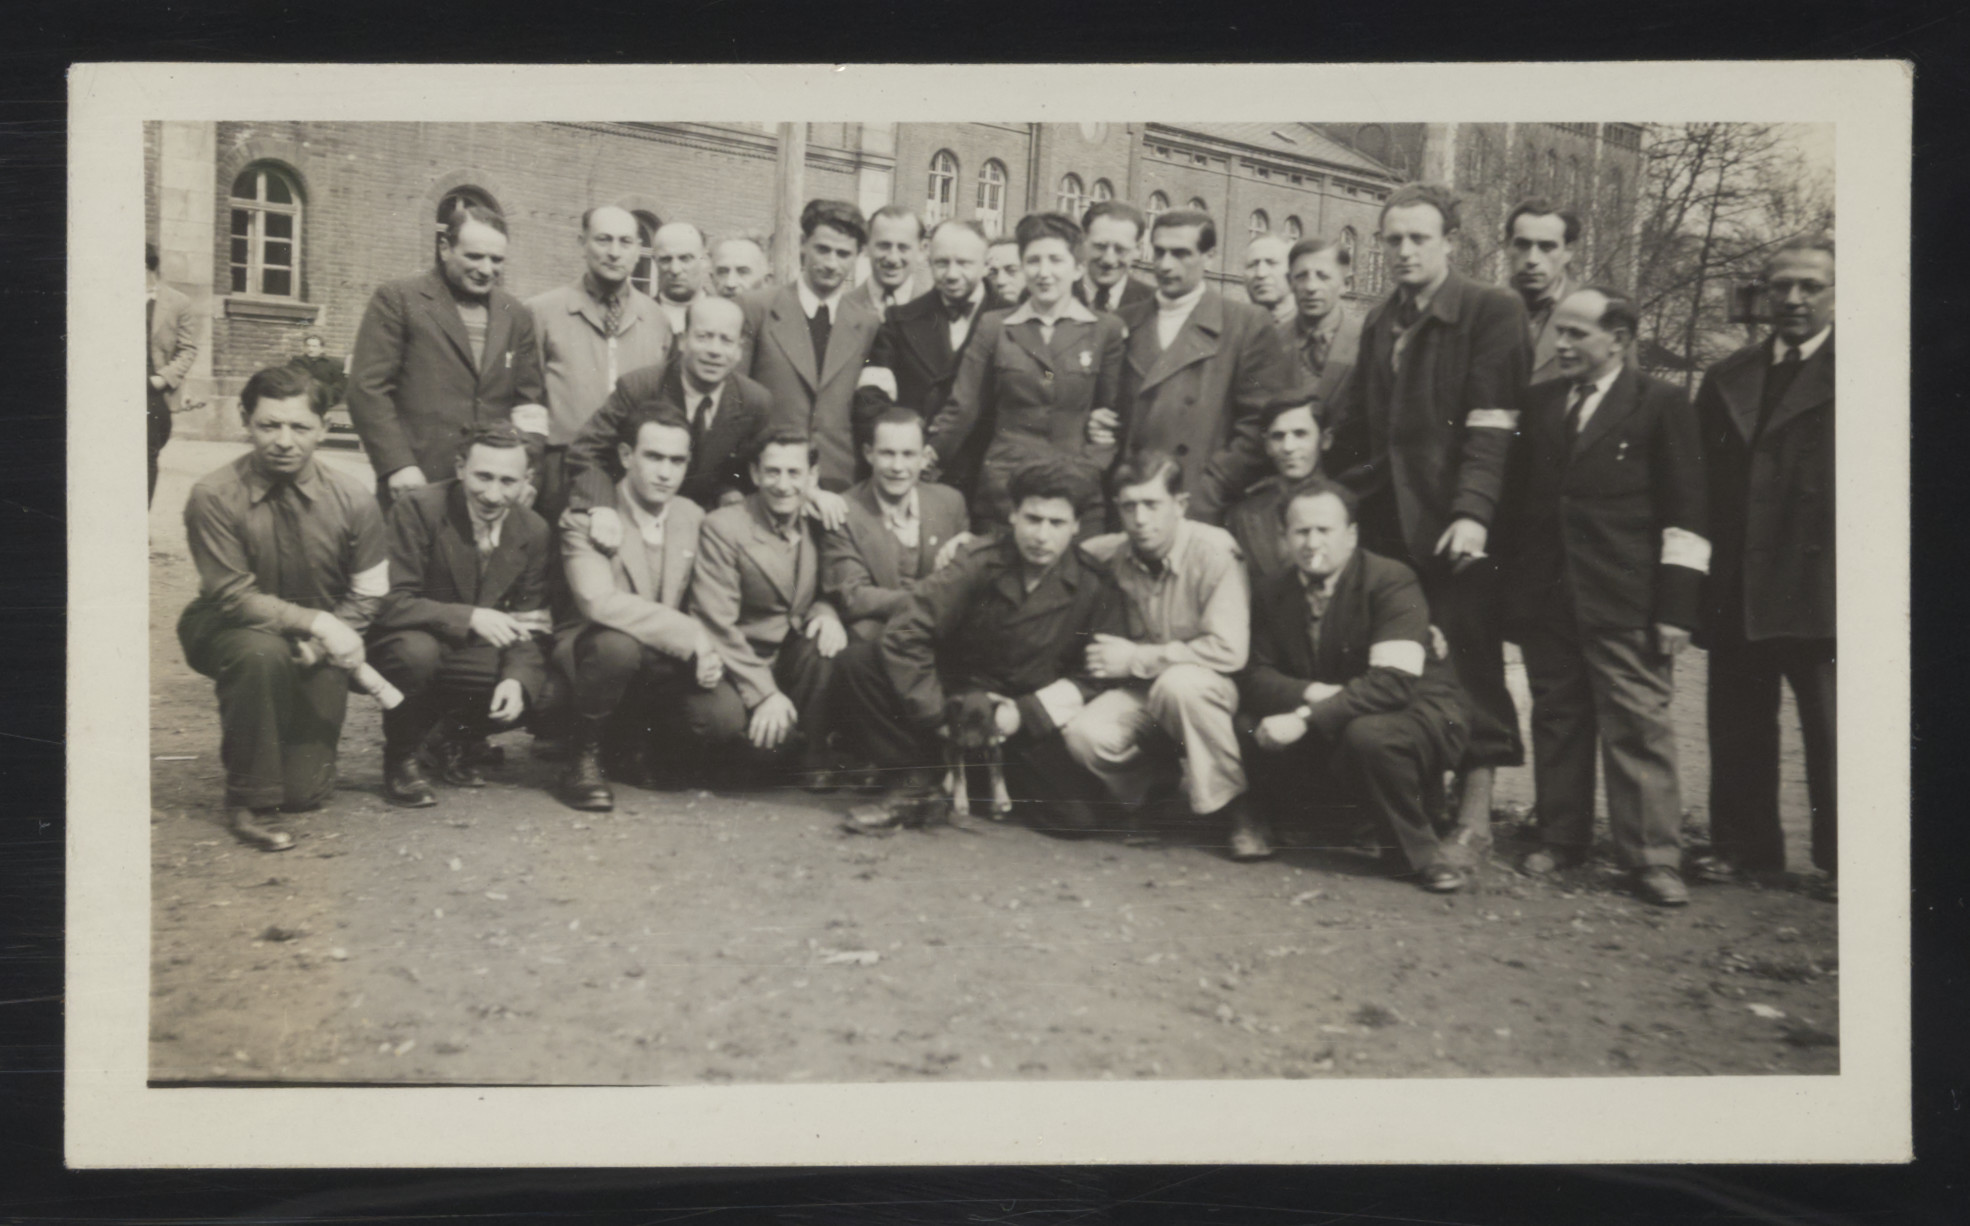 Group portrait of Jewish men wearing armbands in the Deggendorf displaced persons camp.